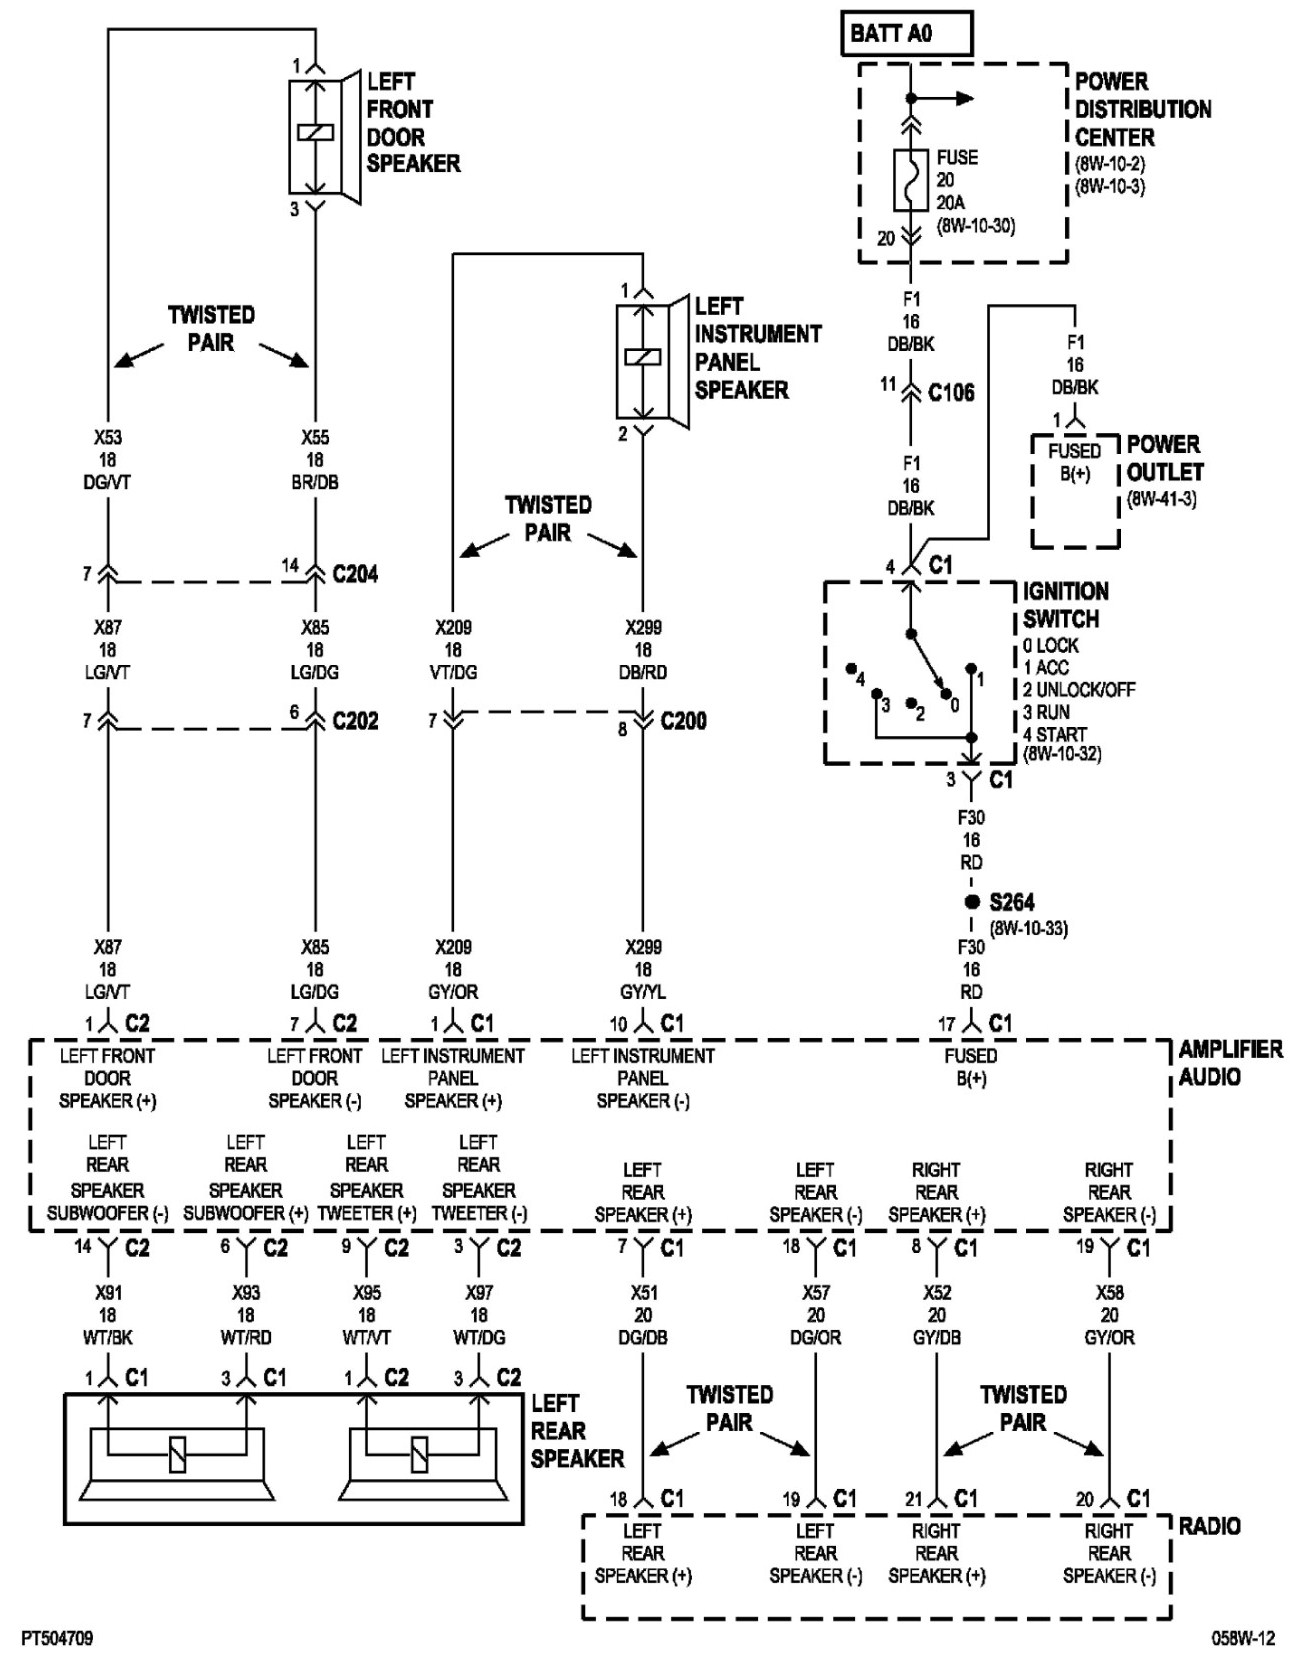 wiring diagram for 2002 pt cruiser the wiring diagram wiring diagram for 2002 pt cruiser wiring wiring diagrams wiring diagram